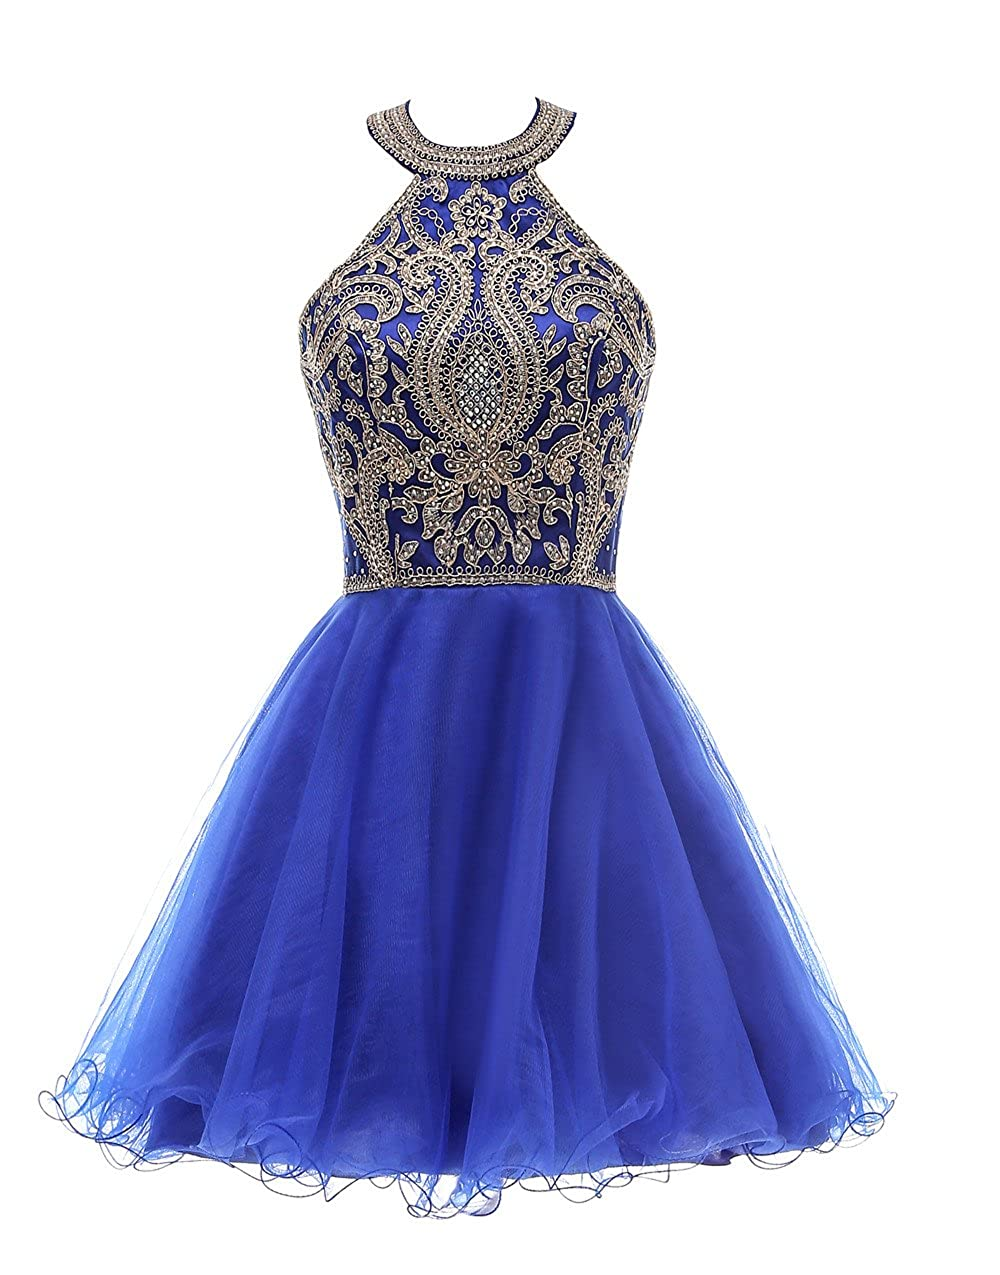 bluee Huifany Short gold Lace Prom Homecoming Dresses Appliques Beads Prom Party Gowns